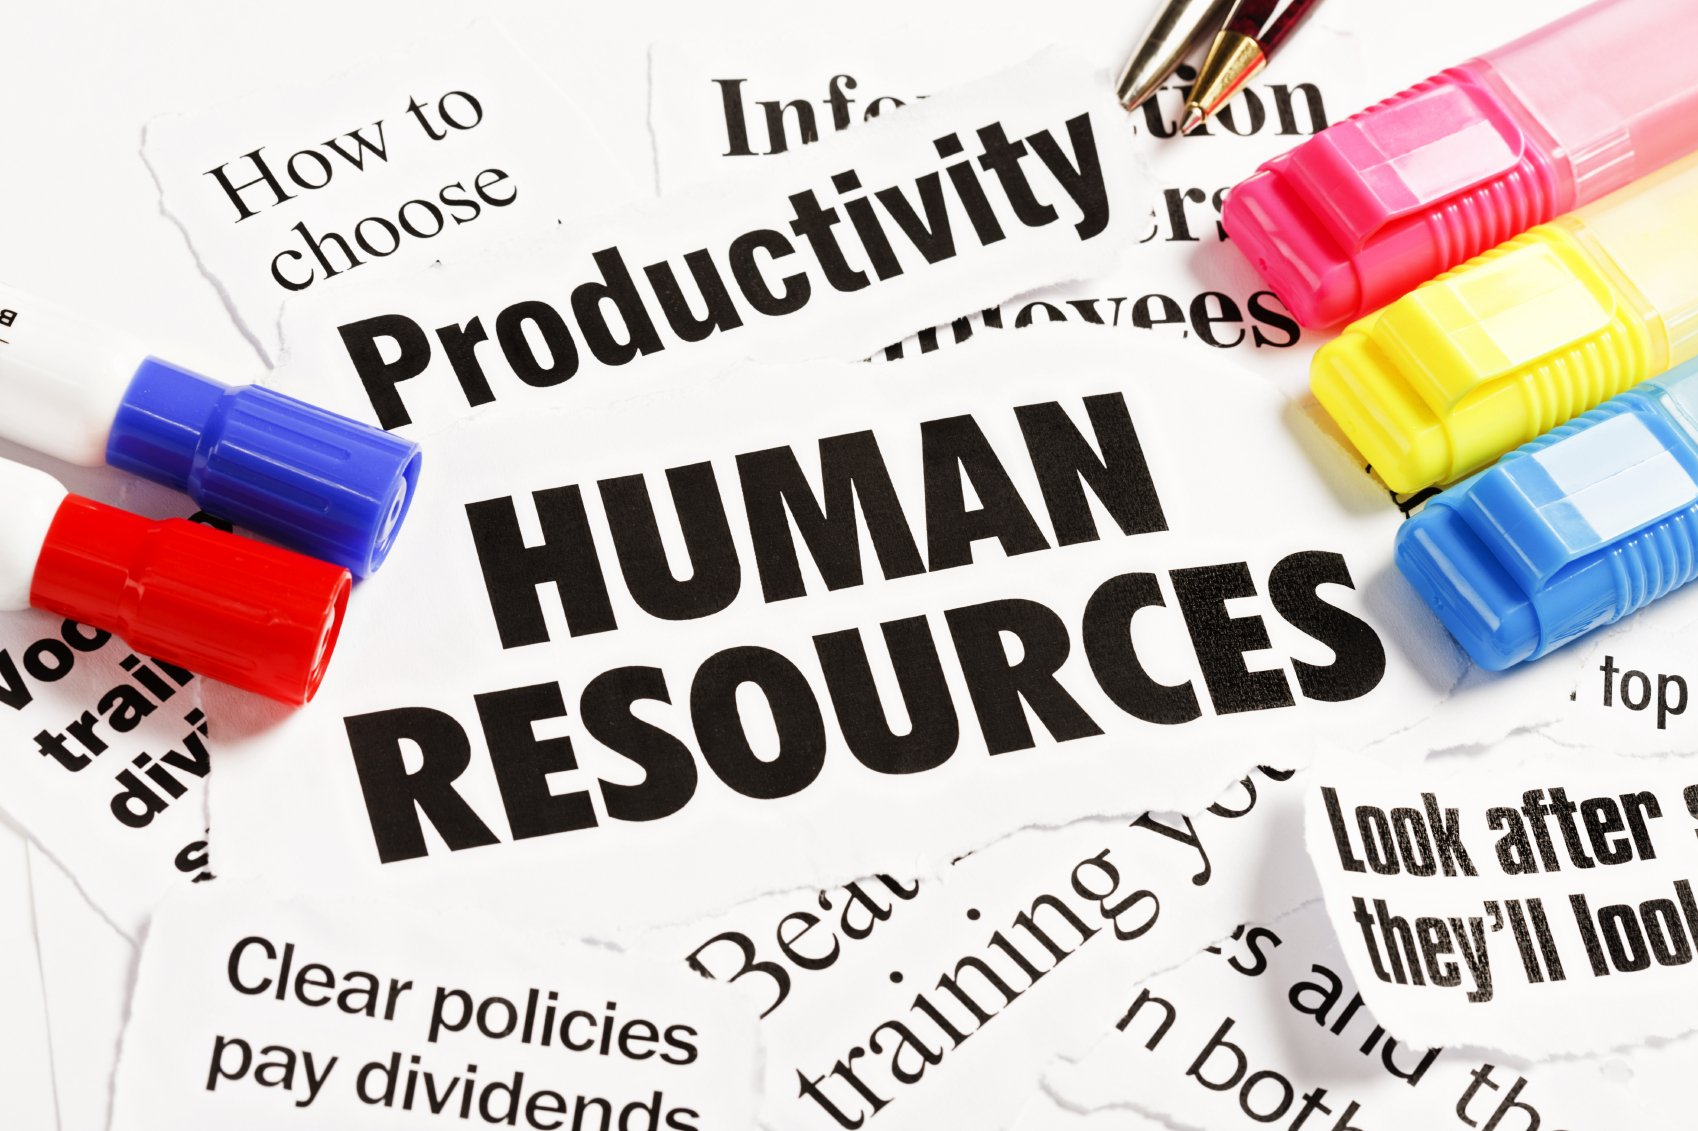 Strategic Tips for Running Successful HR Department